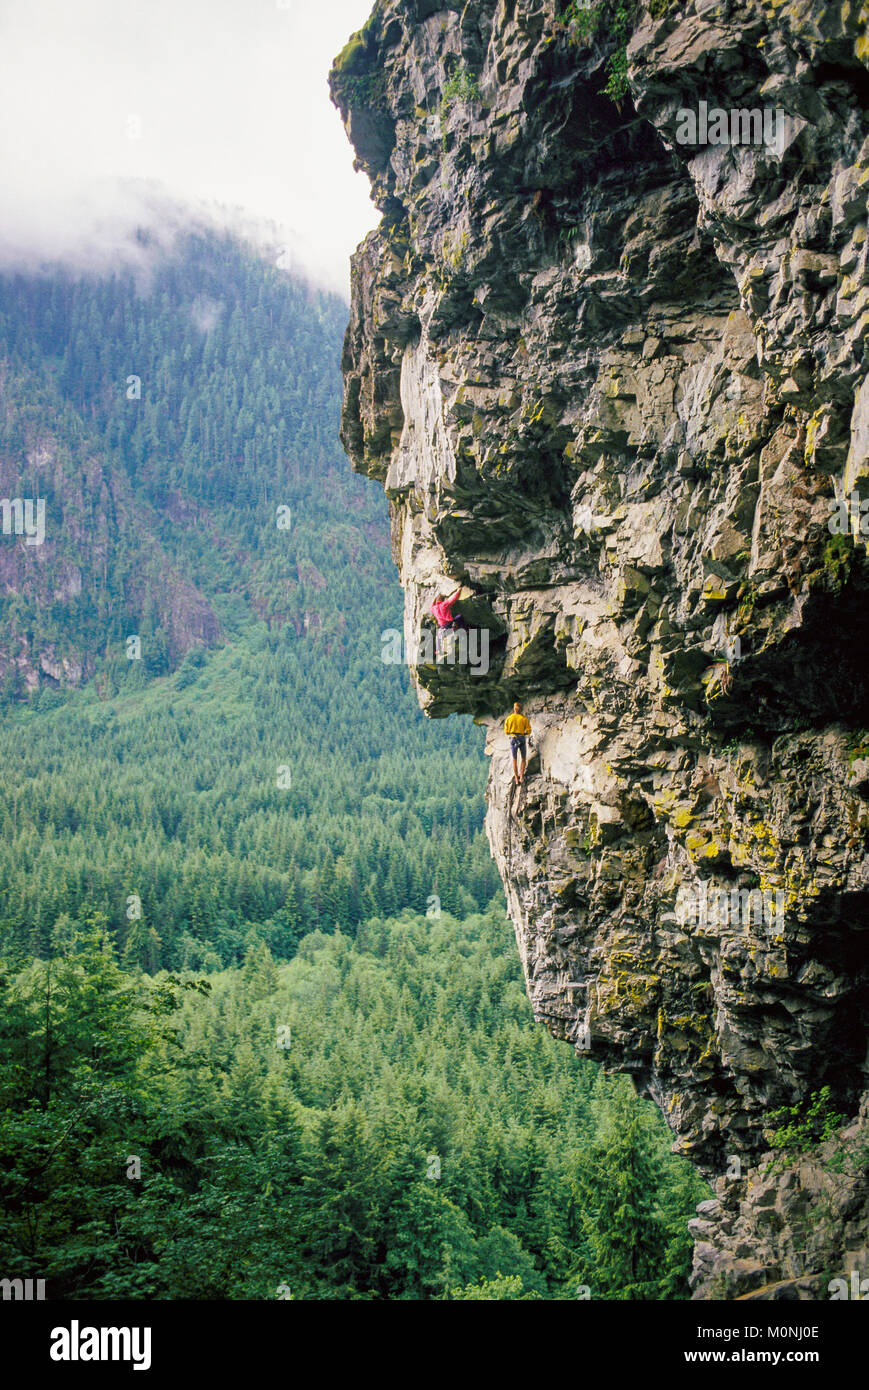 Two men climbing an overhanging cliff up the North Fork of the Snoqualmie River, Washington, USA. - Stock Image